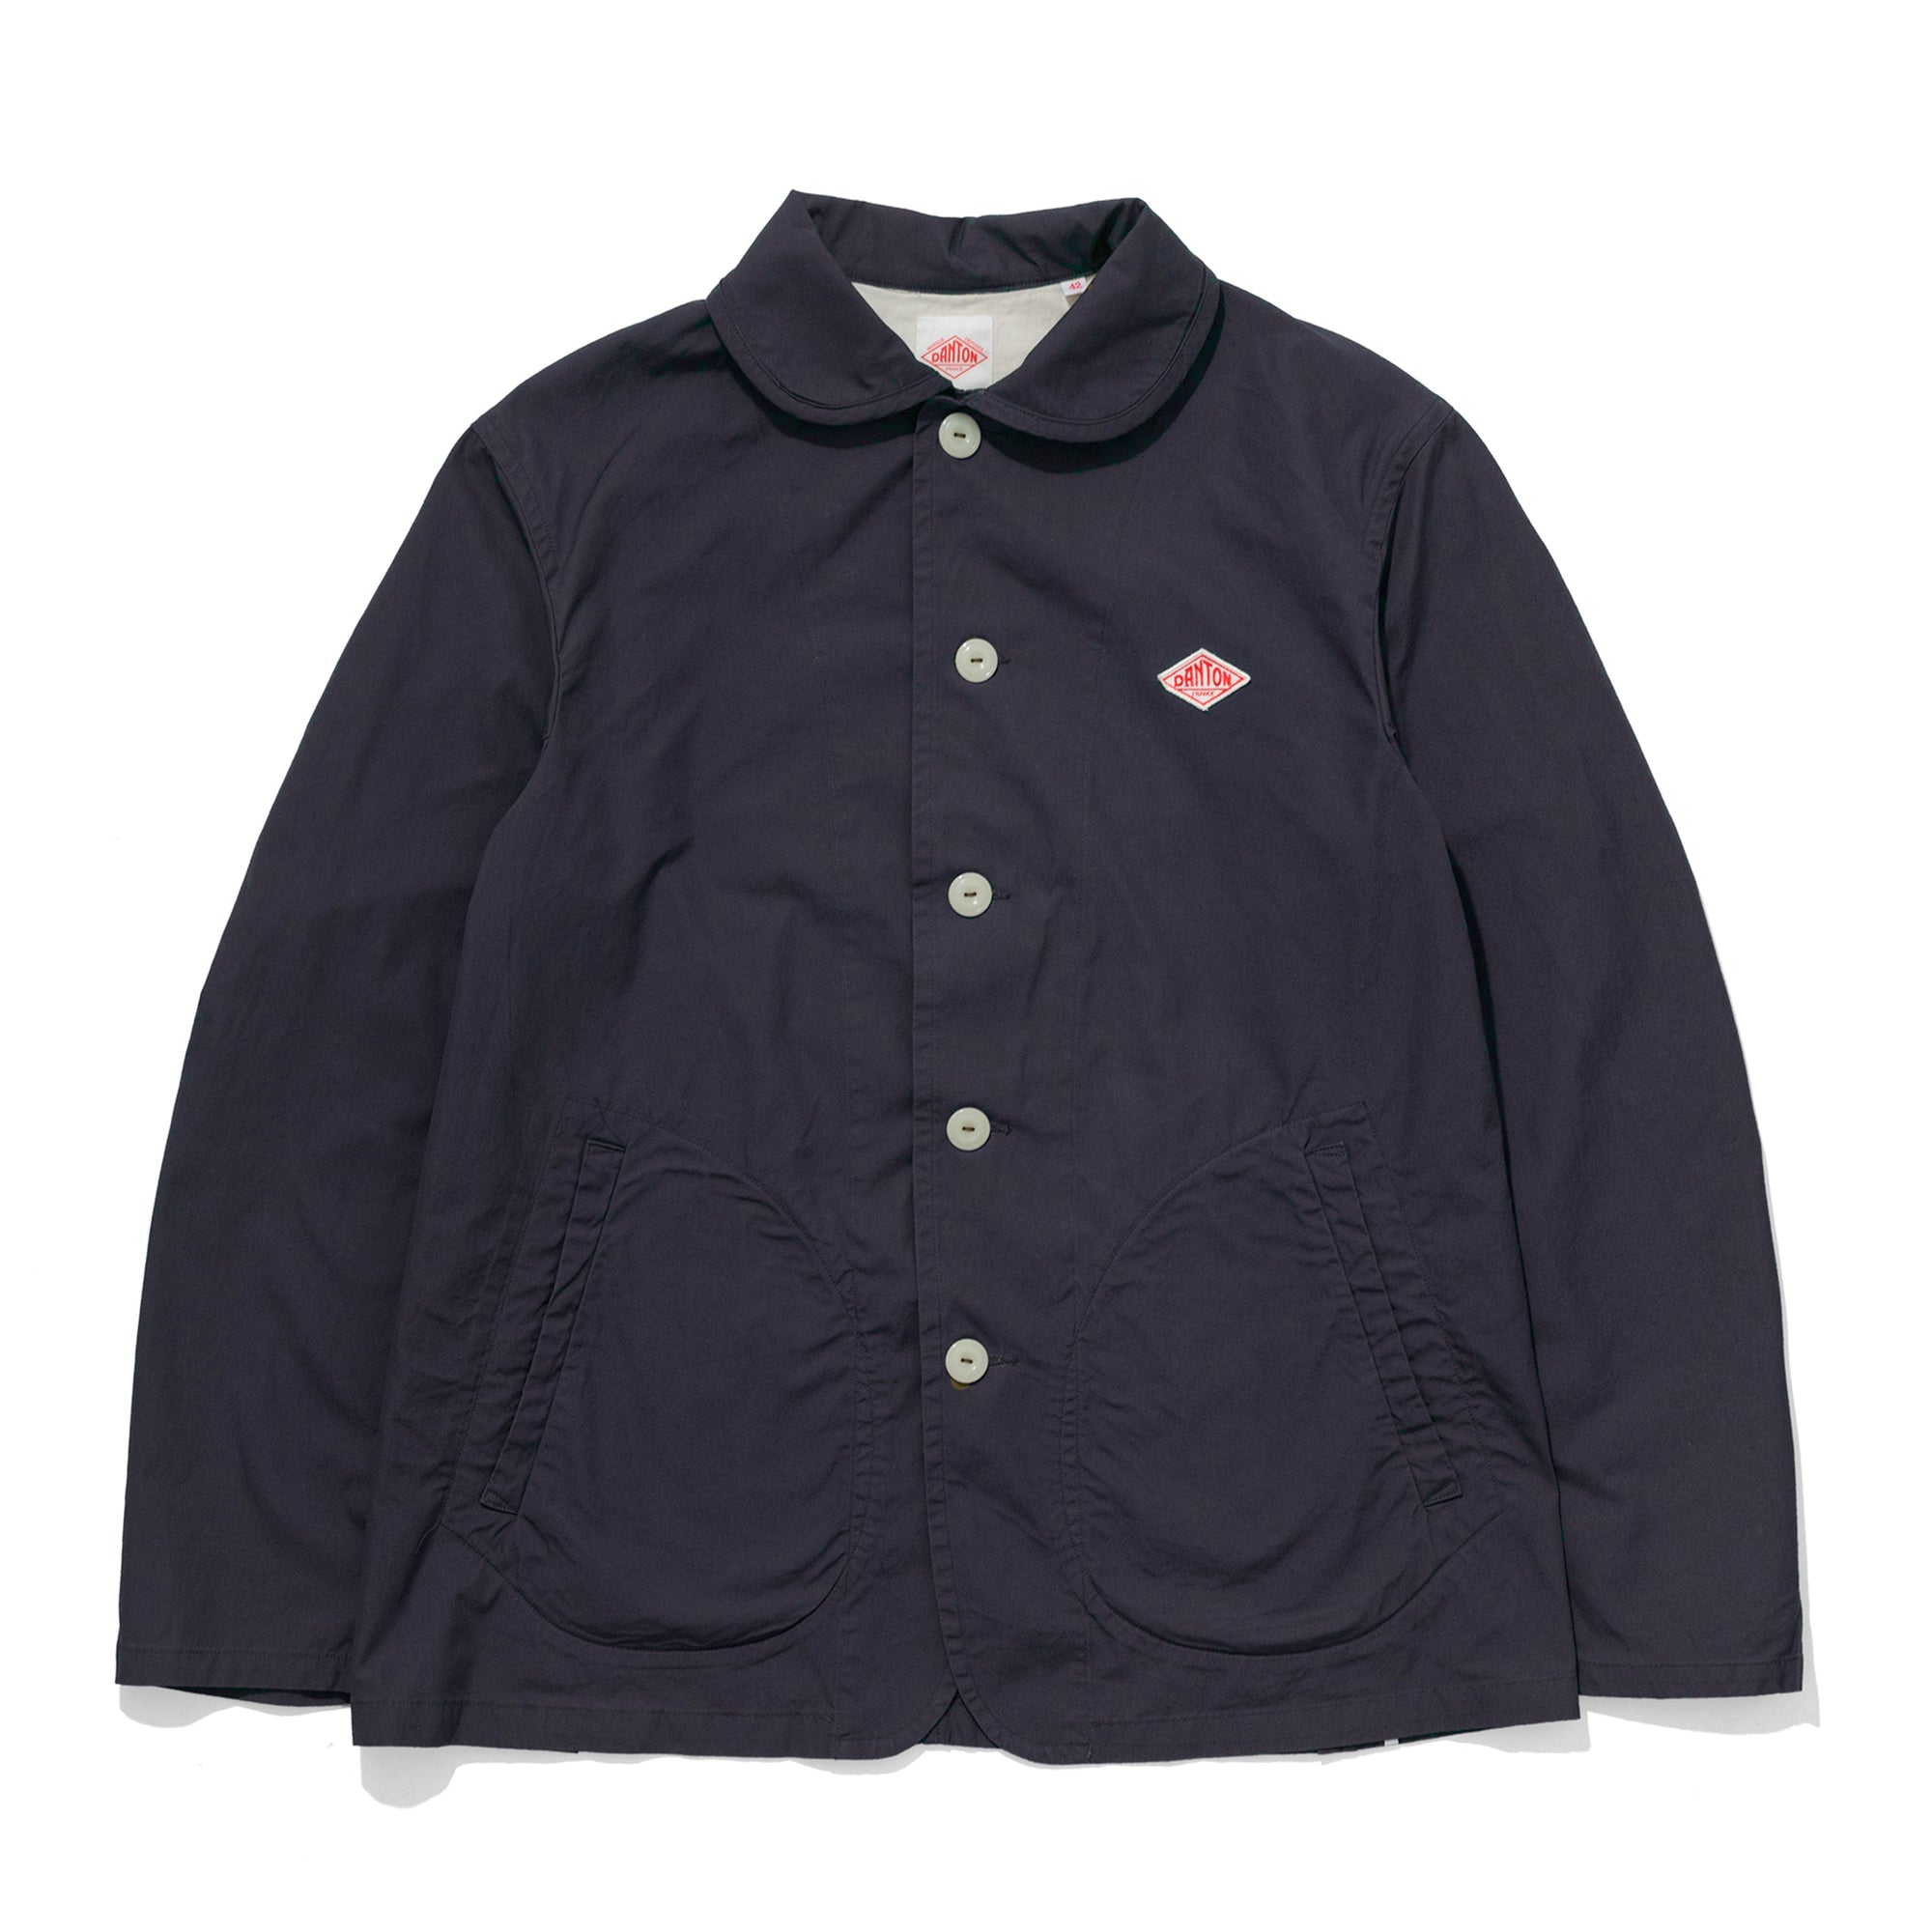 Danton Round Collar Jacket: Navy - The Union Project